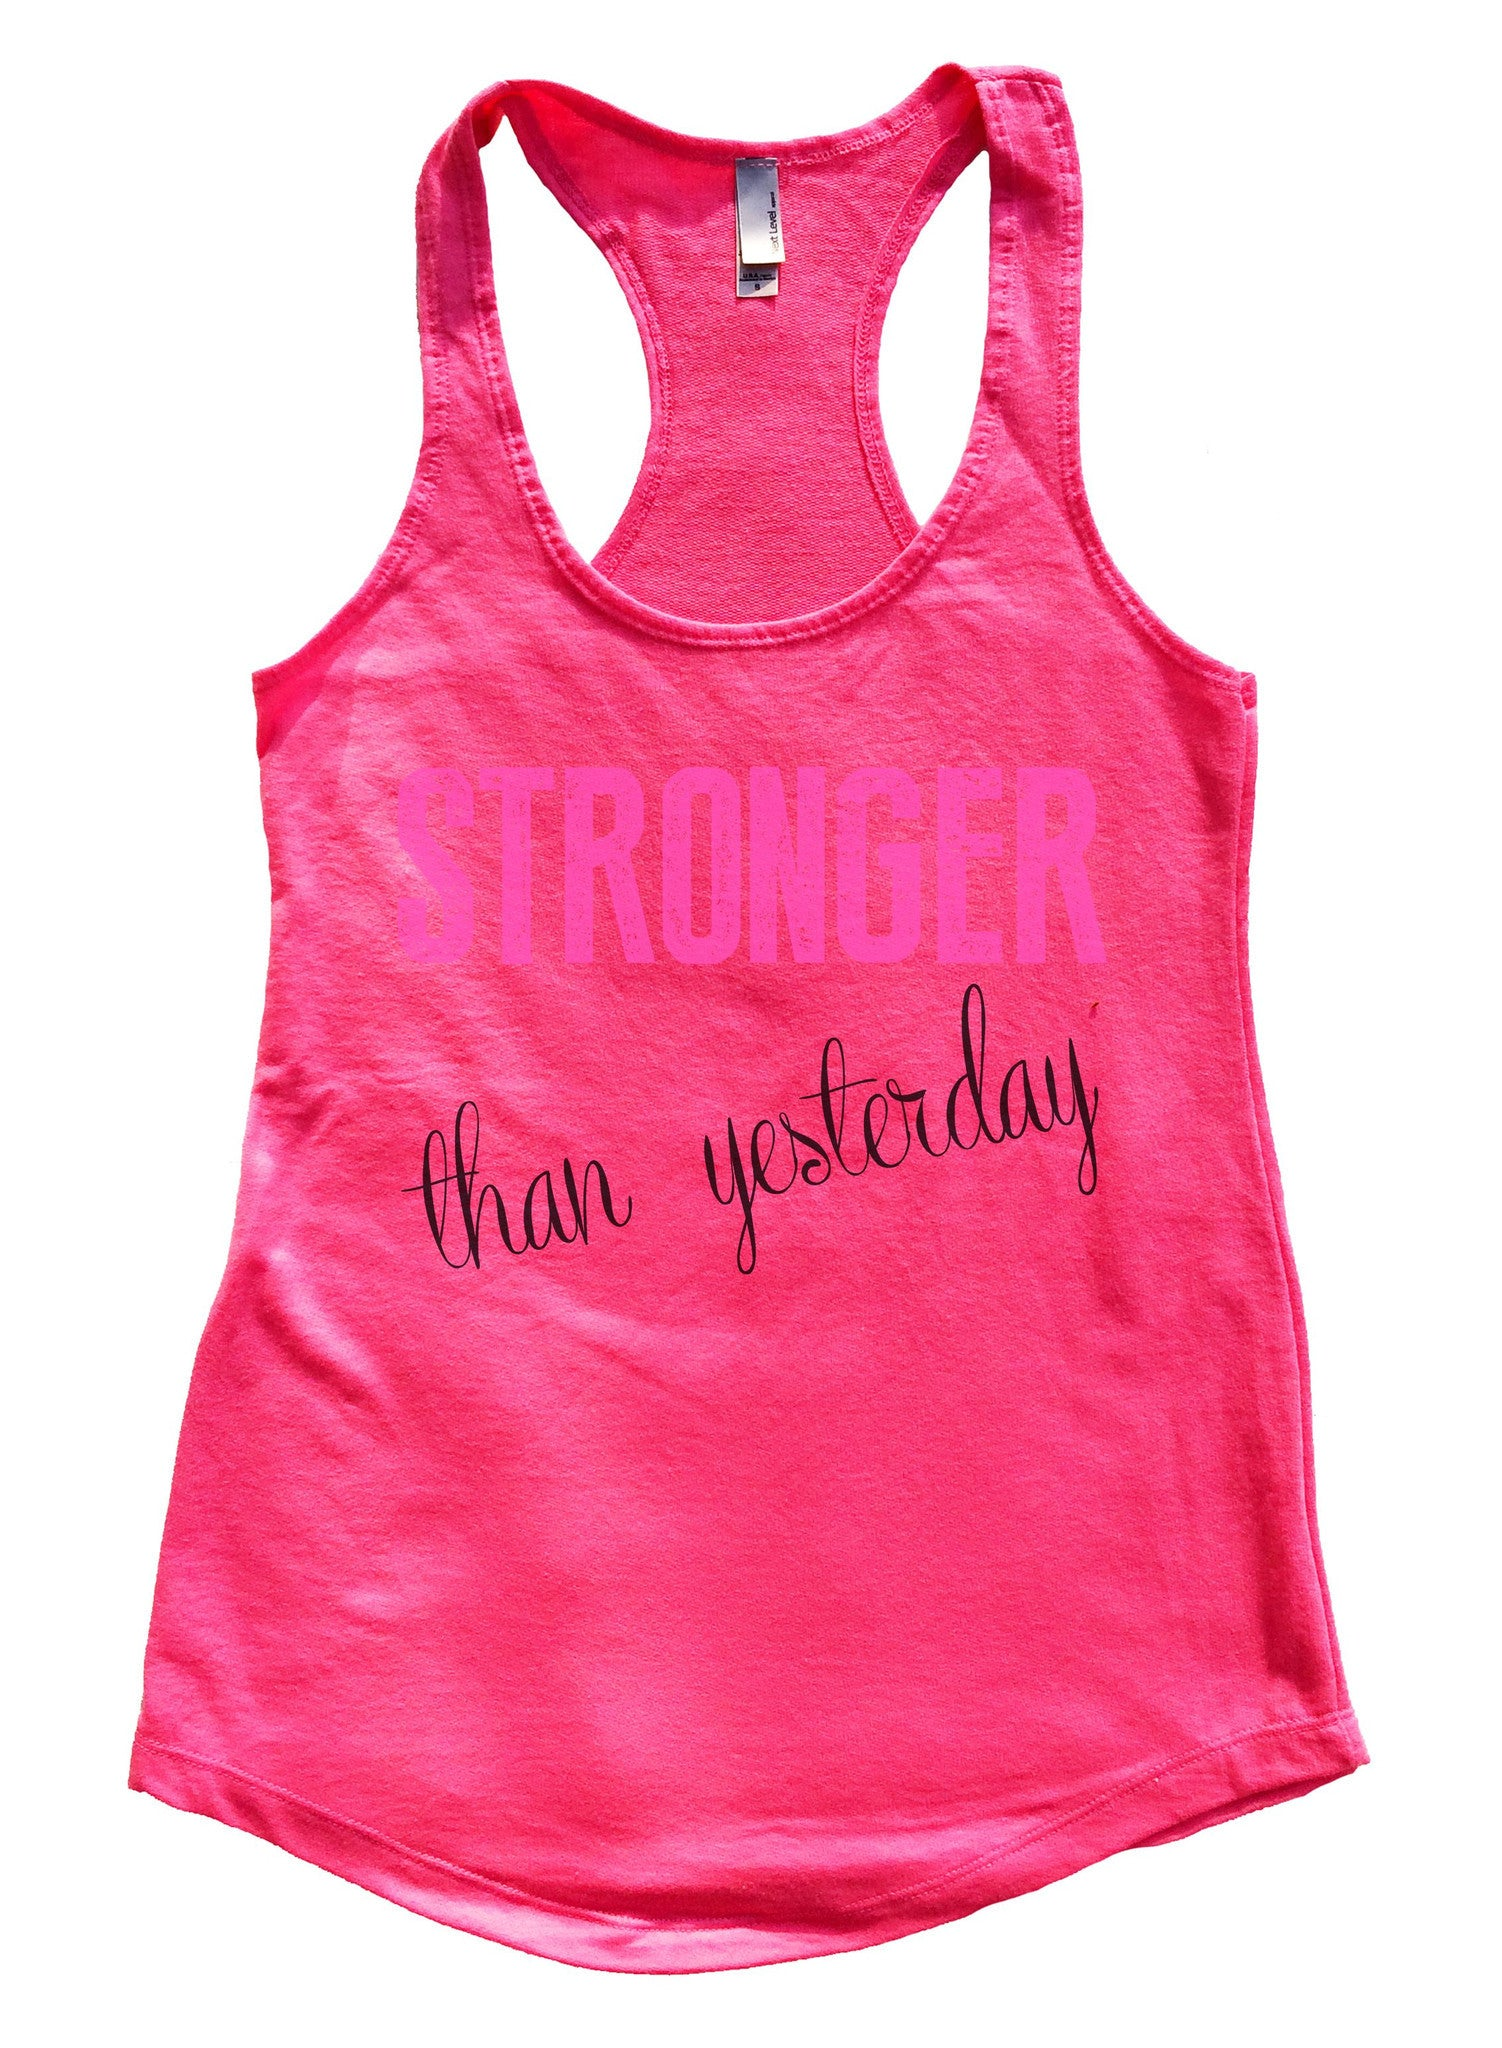 Stronger Than Yesterday Womens Workout Tank Top F768 - Funny Shirts Tank Tops Burnouts and Triblends  - 5